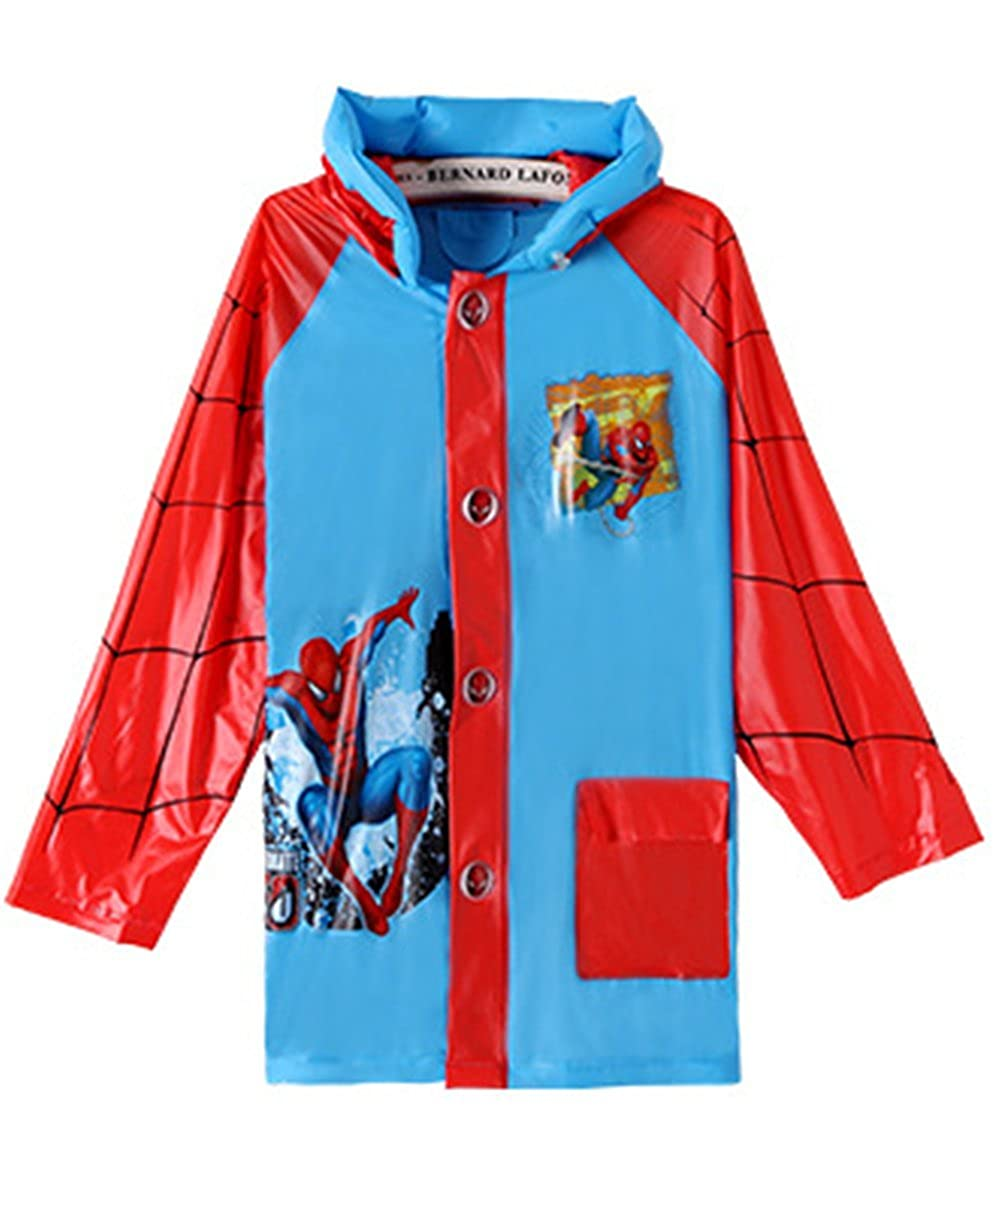 horizon where hope spread Spiderman Boys Portable Cartoon Long Raincoat Rain Poncho Hoods Sleeves S M L XL XXL